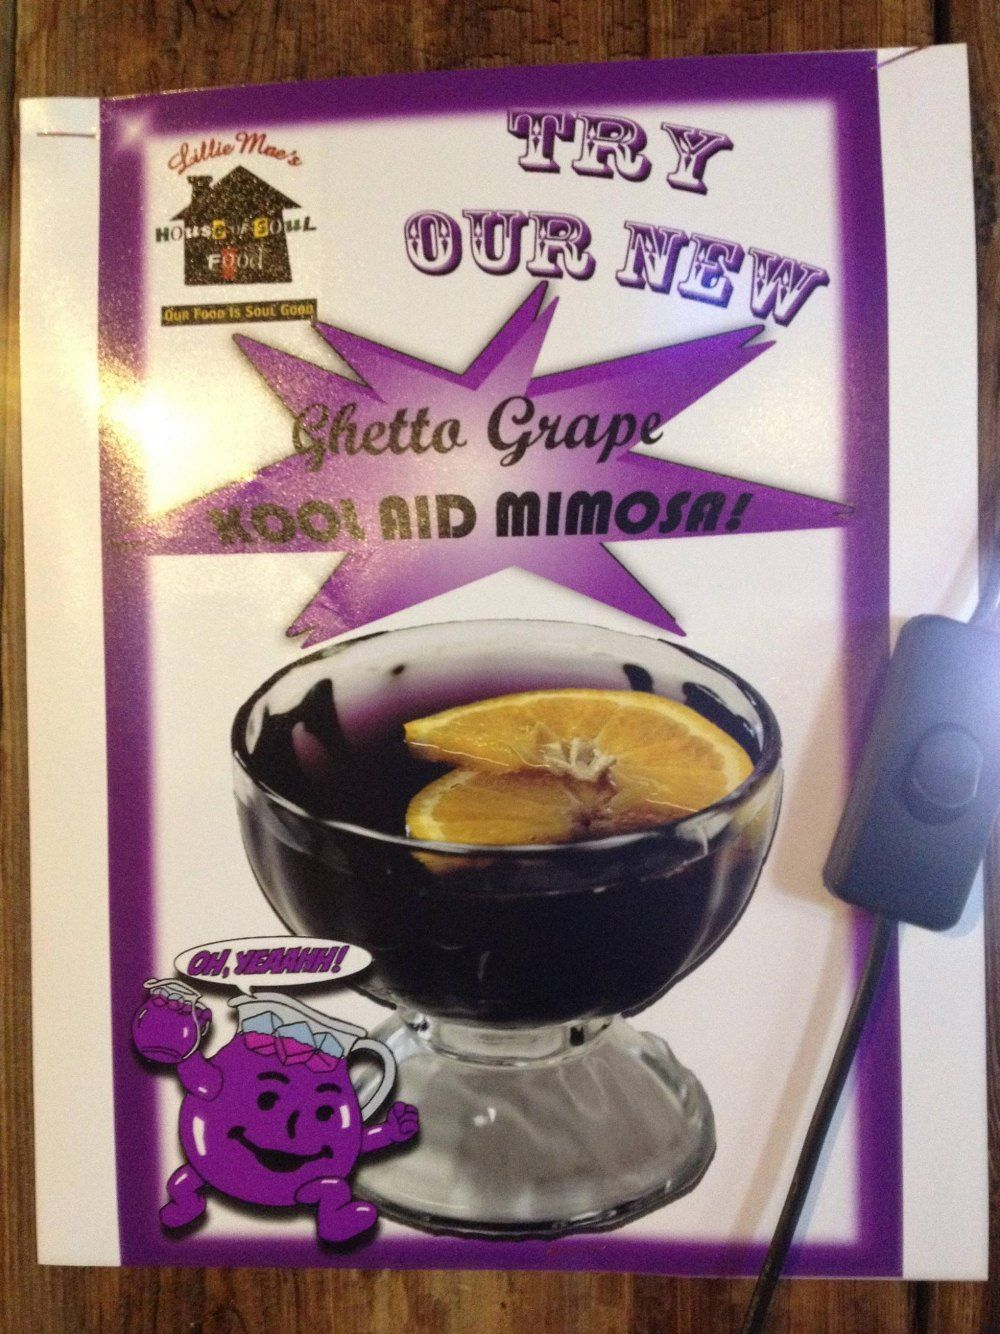 24 Things You Missed In The Ghetto Grape Kool Aid Kool Aid Ghetto